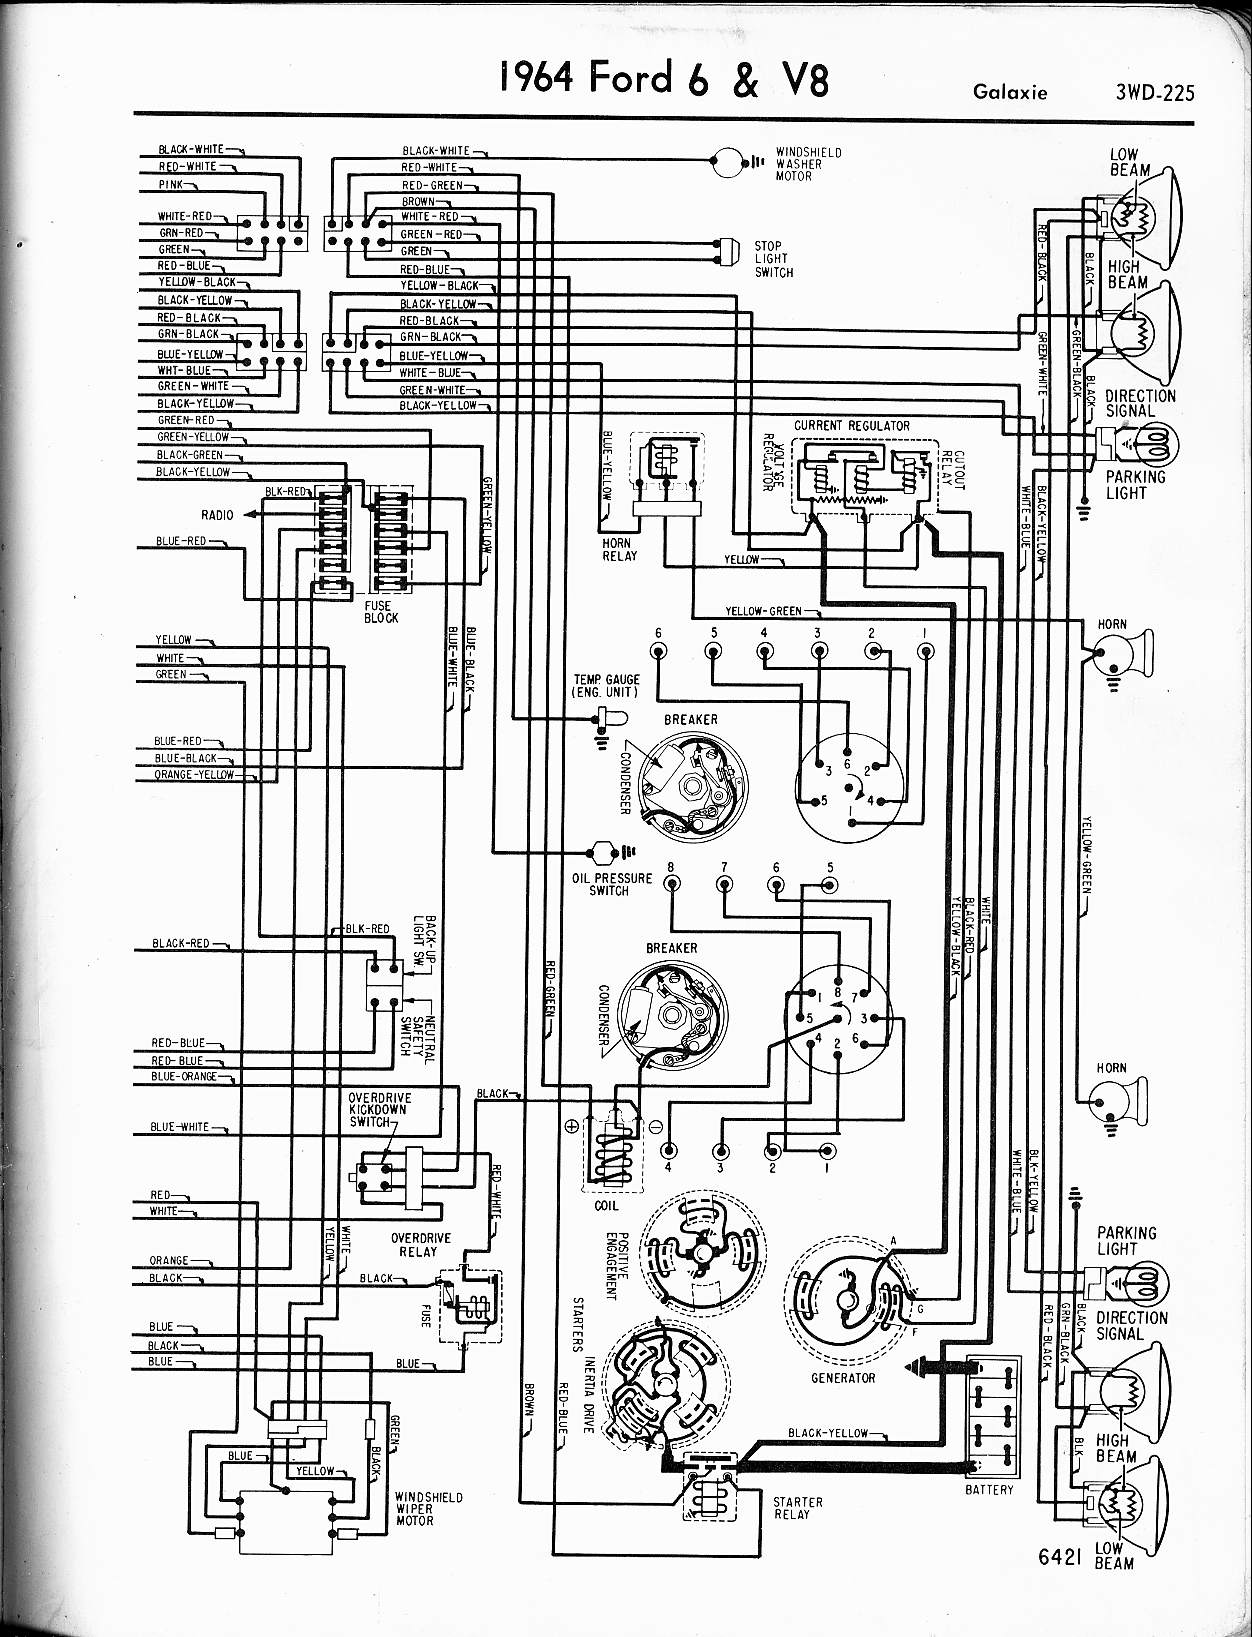 MWire5765 225 57 65 ford wiring diagrams Ford E 350 Wiring Diagrams at love-stories.co